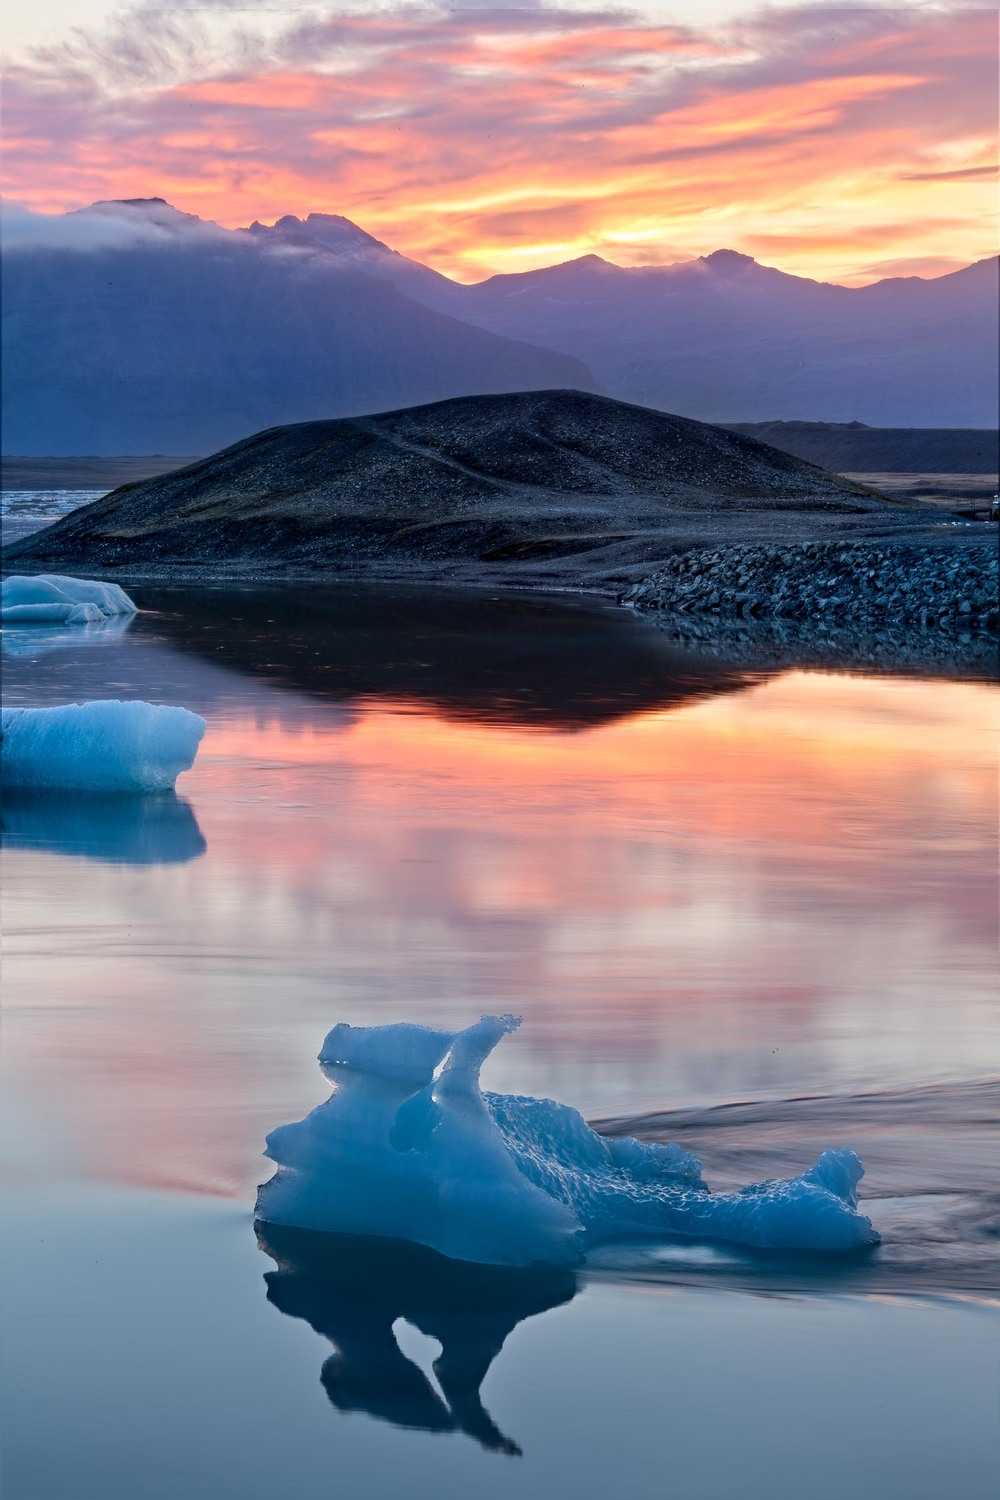 The serenity was palpable as the sun set on  Jokulsarlon Glacier Lagoon in Iceland . The contrasting warm of the sunset and the cool blue of the iceberg and lagoon provided a striking contrast.